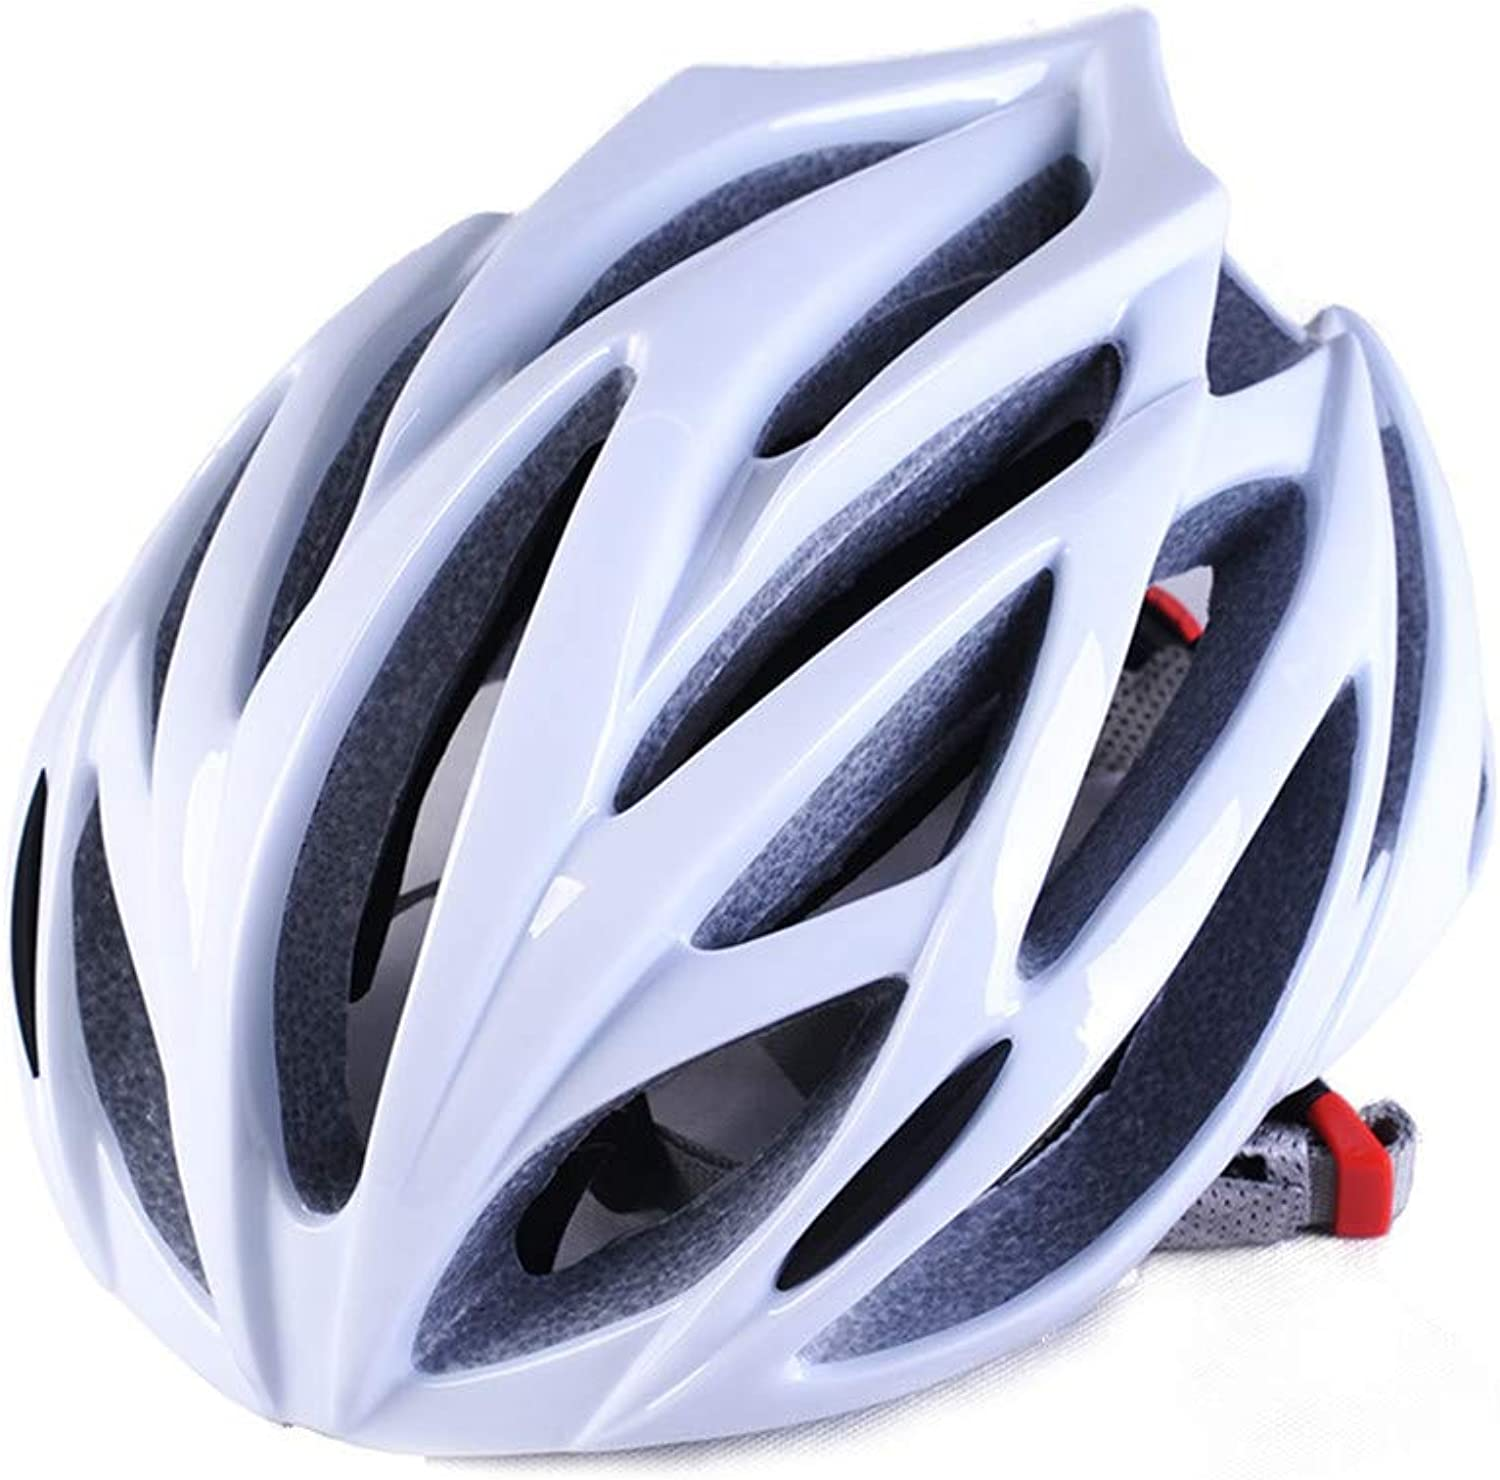 Cycling Helmet Mountain Bike Outdoor Riding Equipment OnePiece Super Light Inner Cushion Adult Adjustable Size